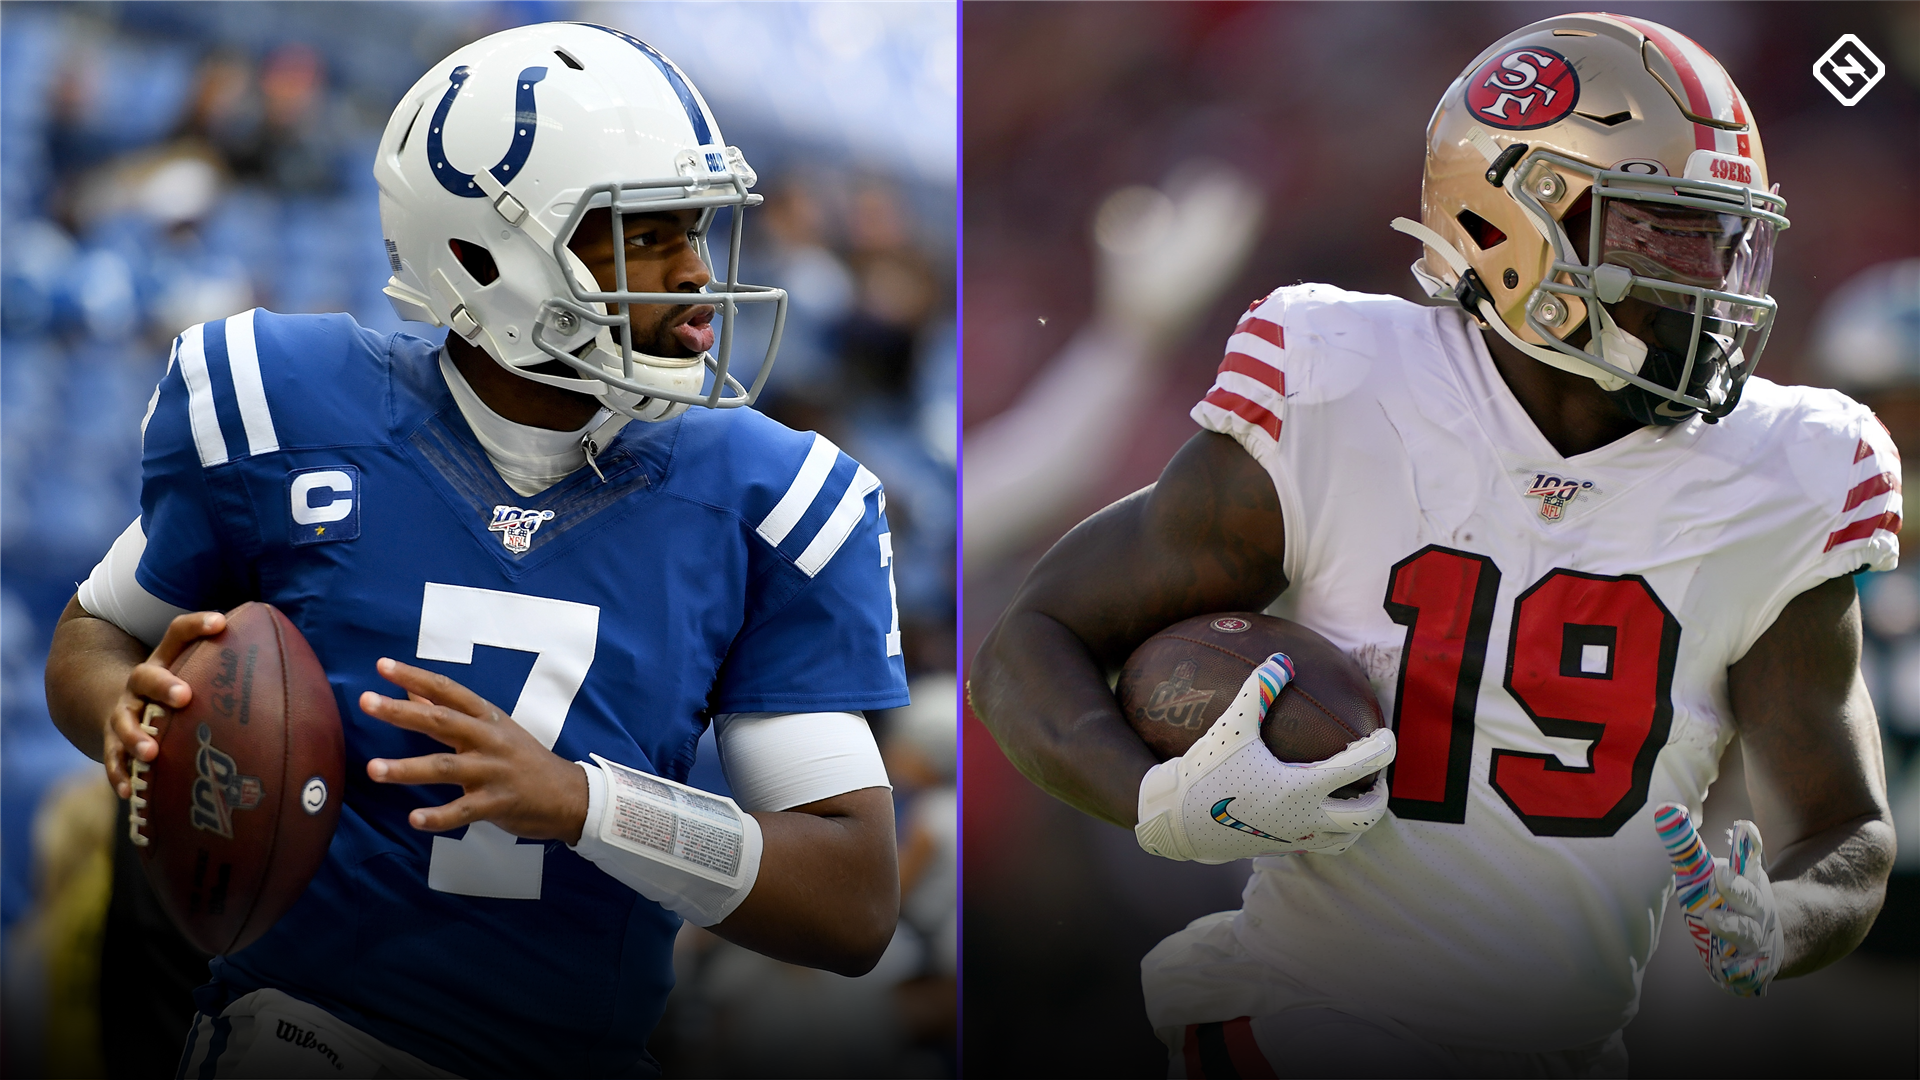 Fantasy Football Waiver Wire Watch List for Week 12: Streaming targets, free agent sleepers include Jacoby Brissett, Deebo Samuel